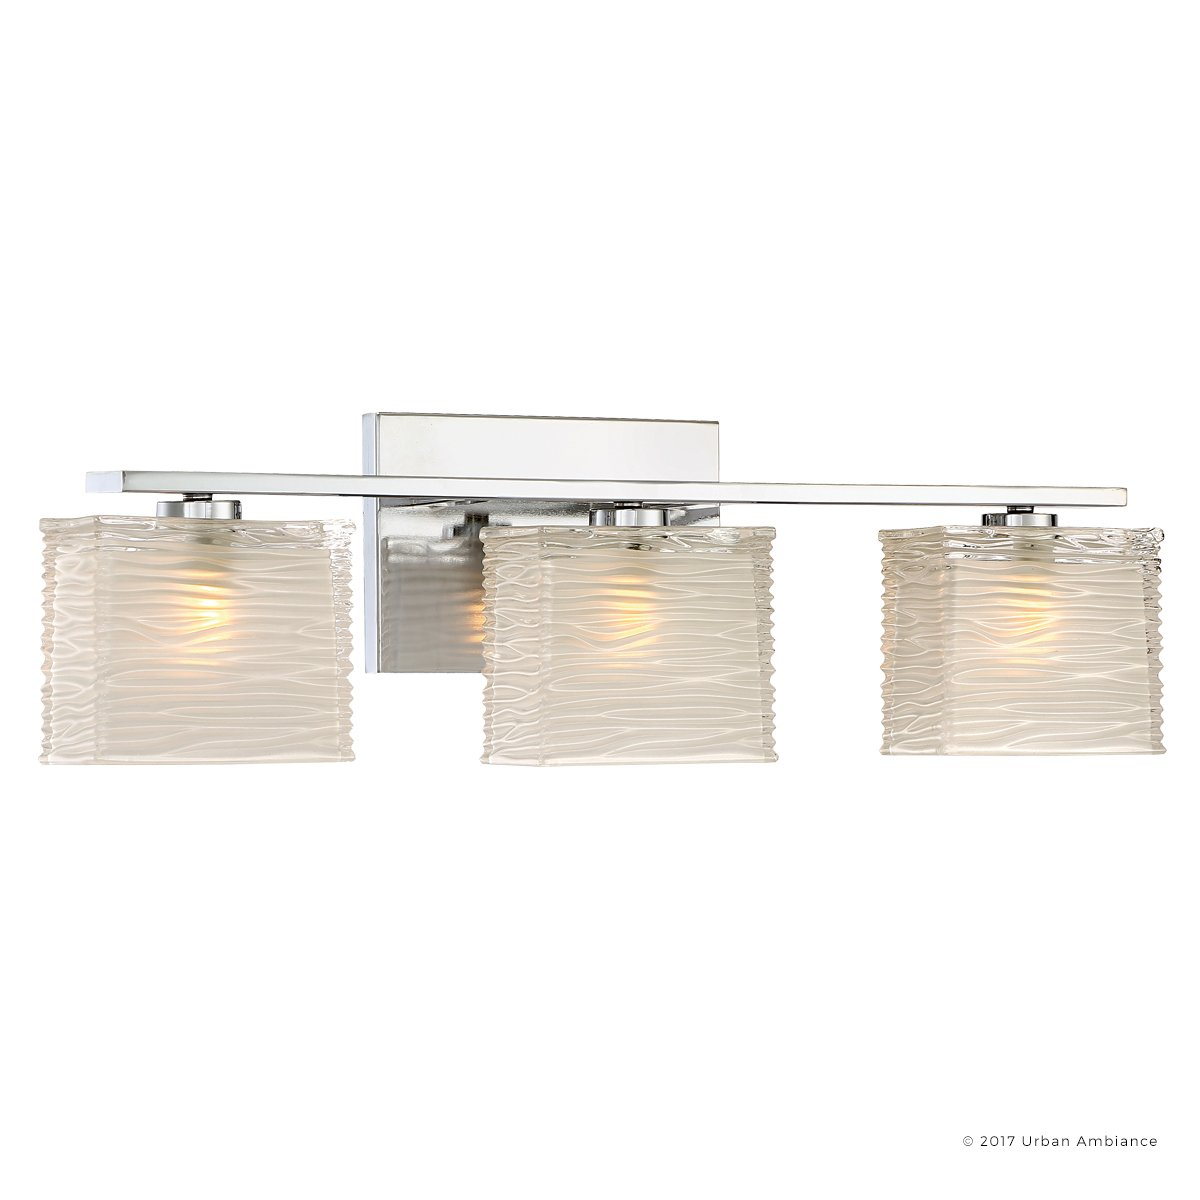 Luxury Modern Bathroom Light, Medium Size: 6.75''H x 22.5''W, with Style Elements, Polished Chrome Finish and Sandblasted Inner, Clear Wavy Outer Glass, G9 LED Technology, UQL2723 by Urban Ambiance